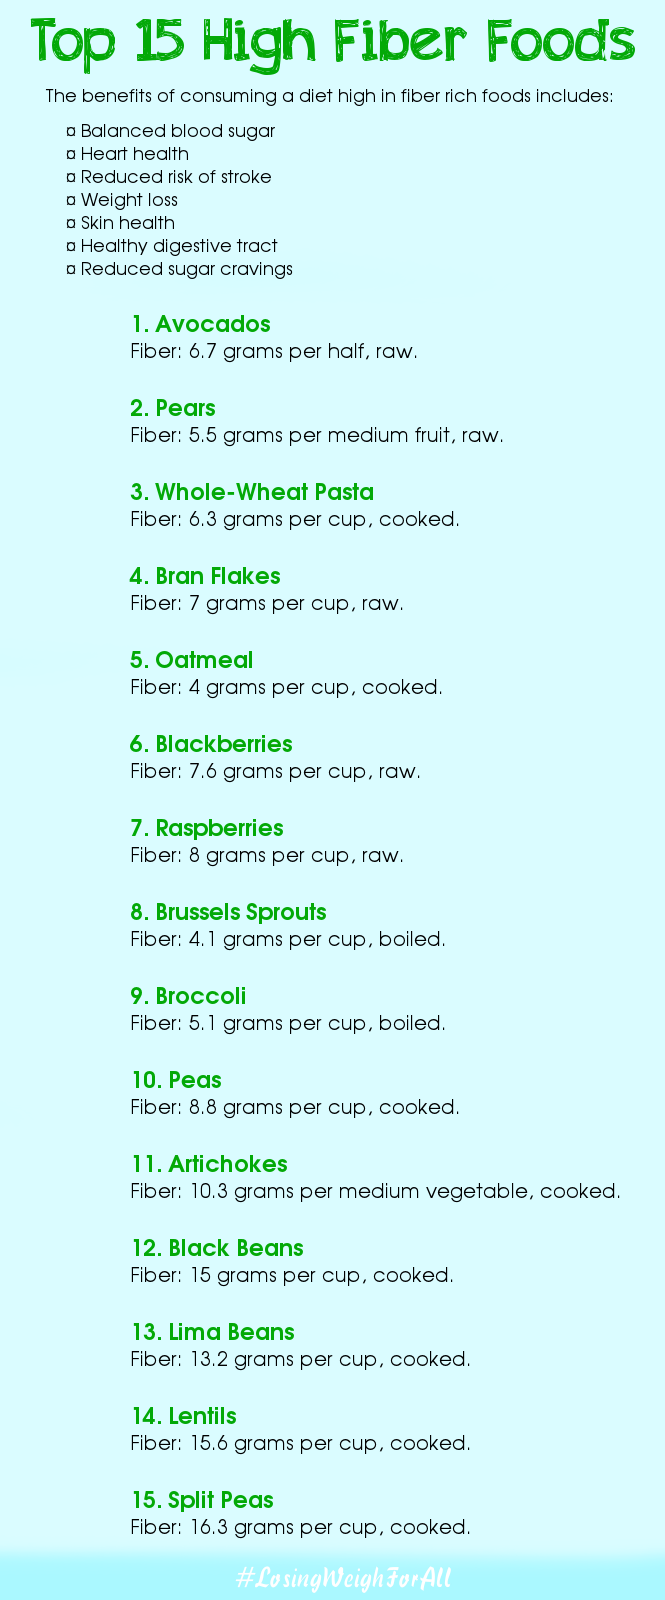 Top 15 High Fiber Foods